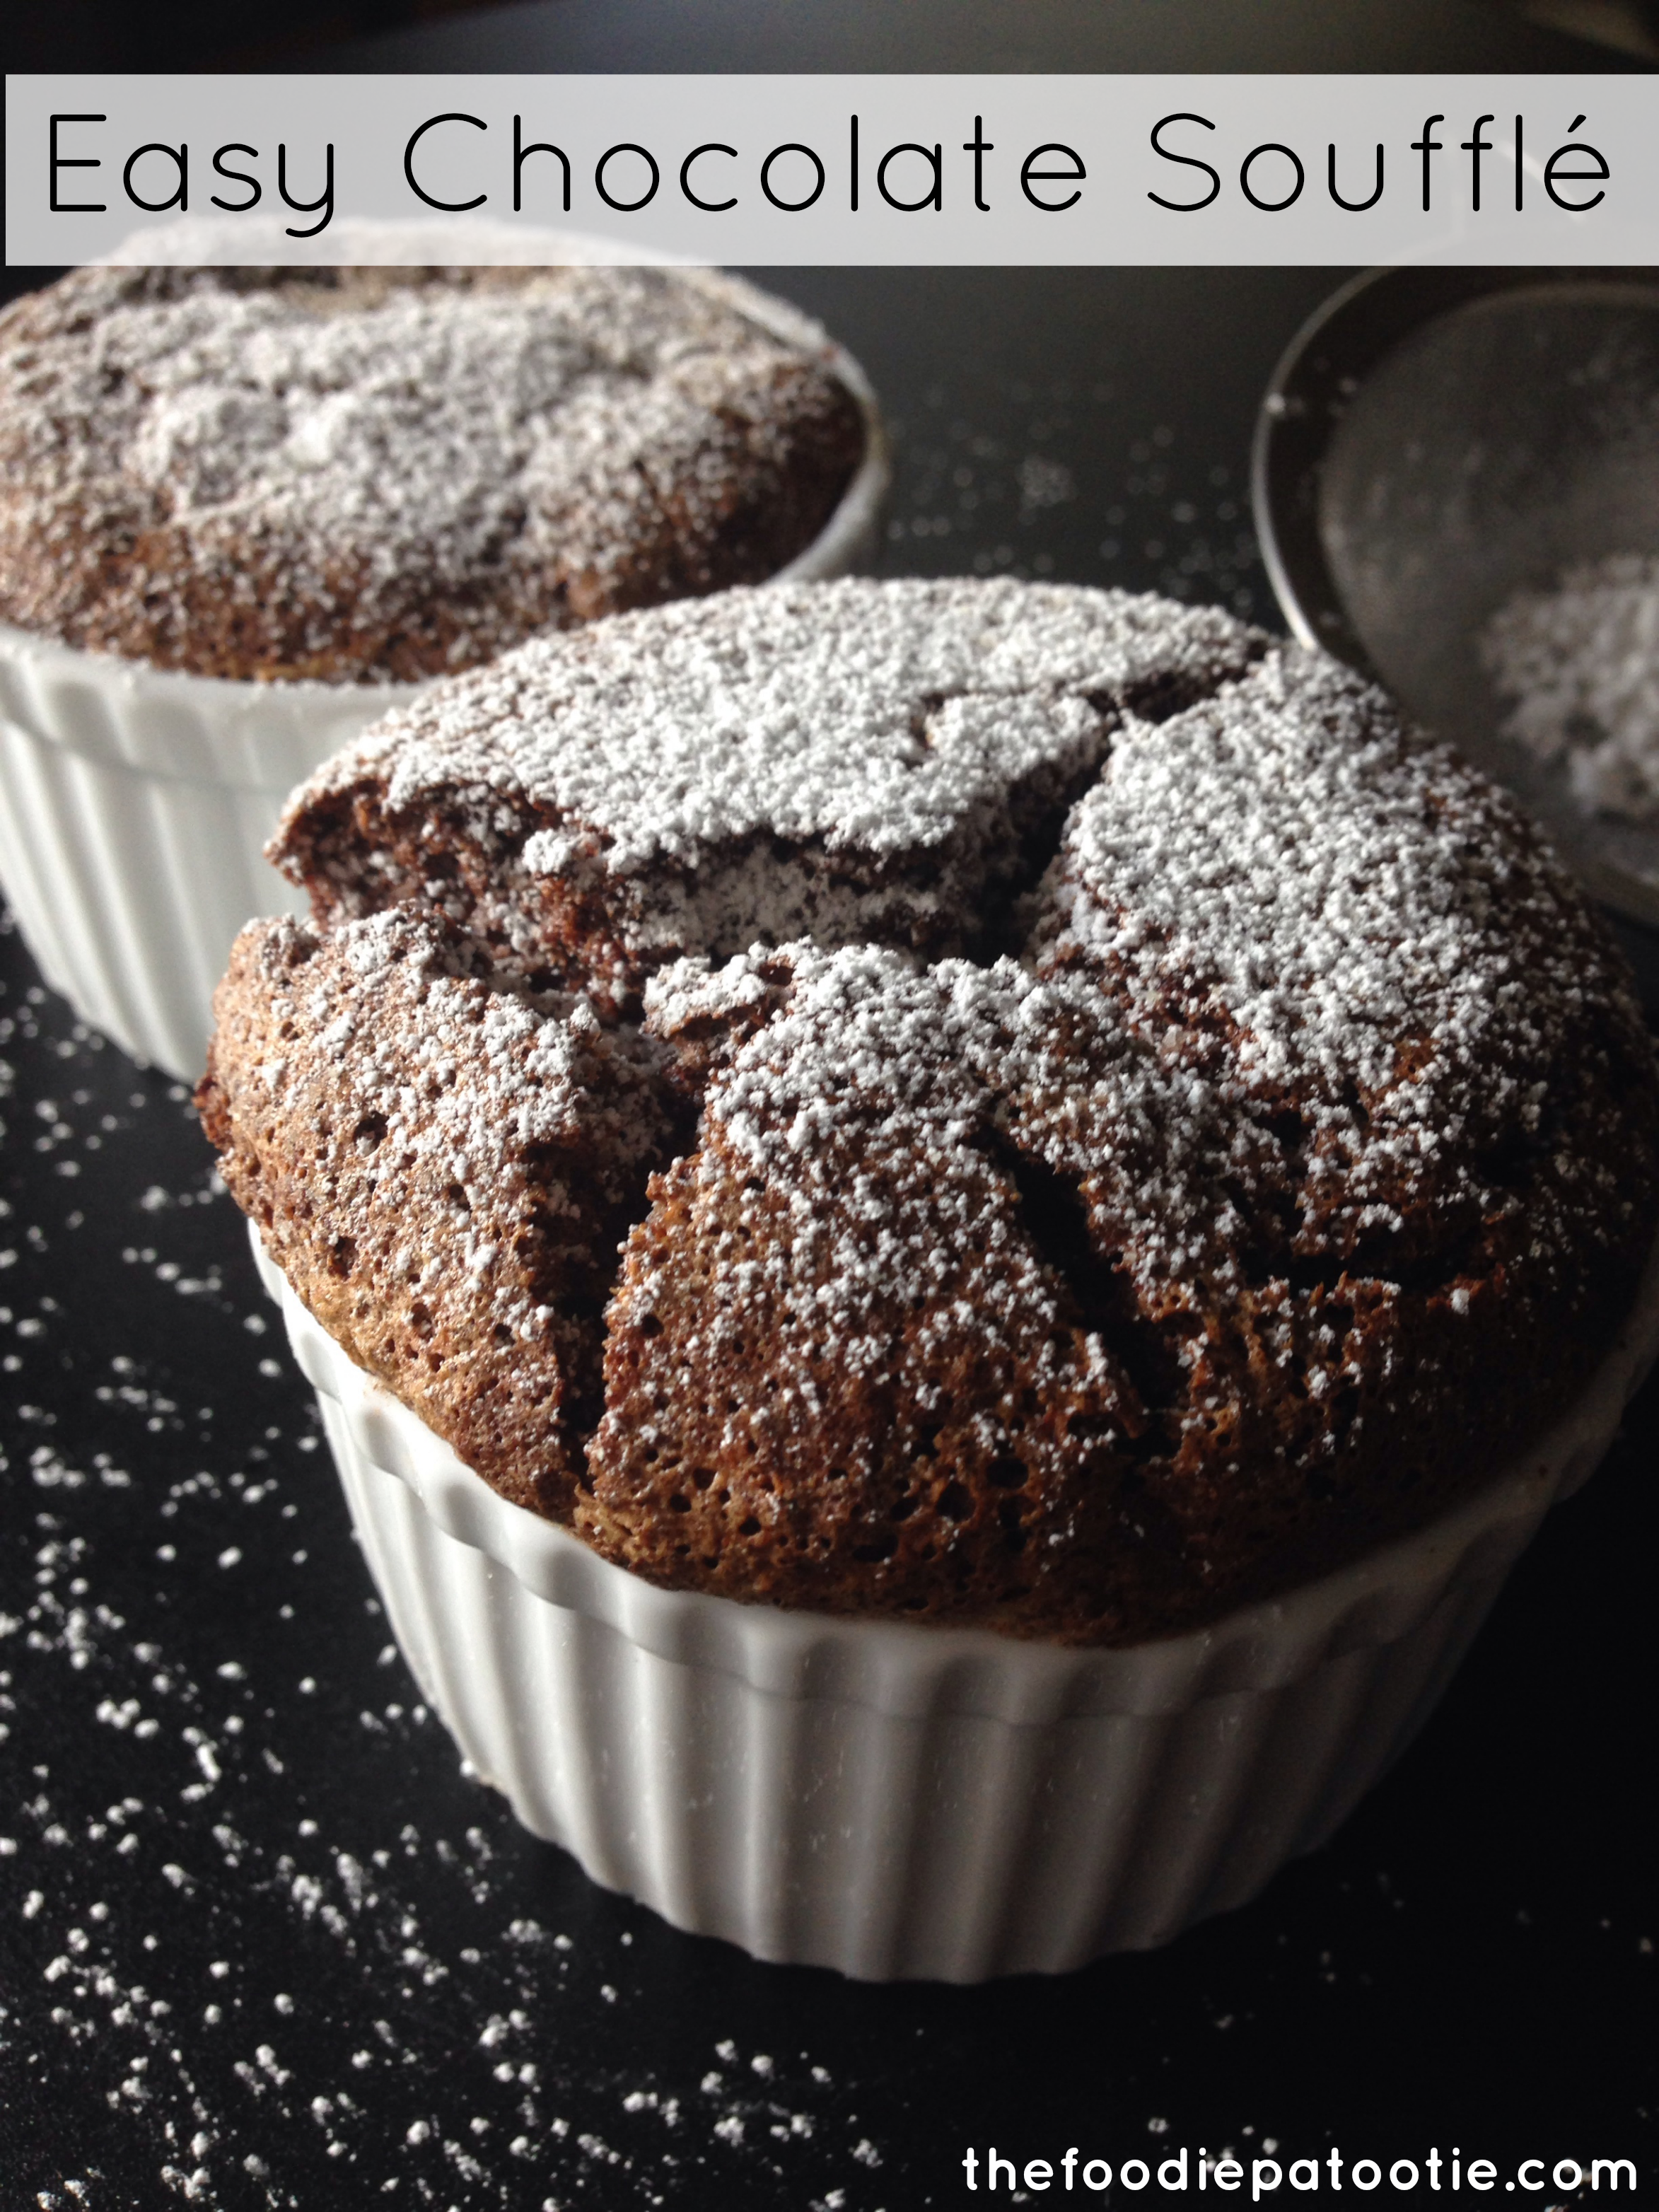 Day White Chocolate Souffle Recipes — Dishmaps